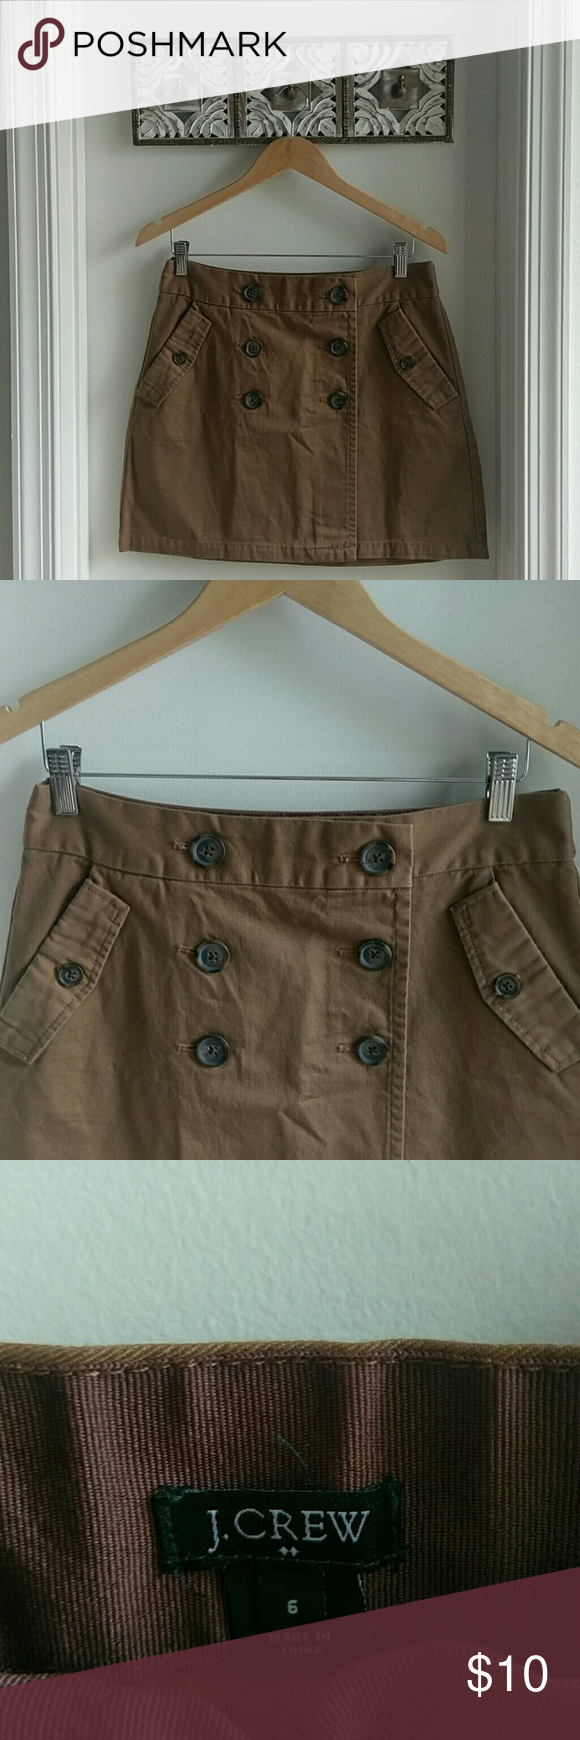 J. Crew Factory Sailor skirt Knee length khaki skirt in very good condition! First picture credited to J.crew.com for style inspiration... But very similar style.   Length 16in. J. Crew Factory Skirts